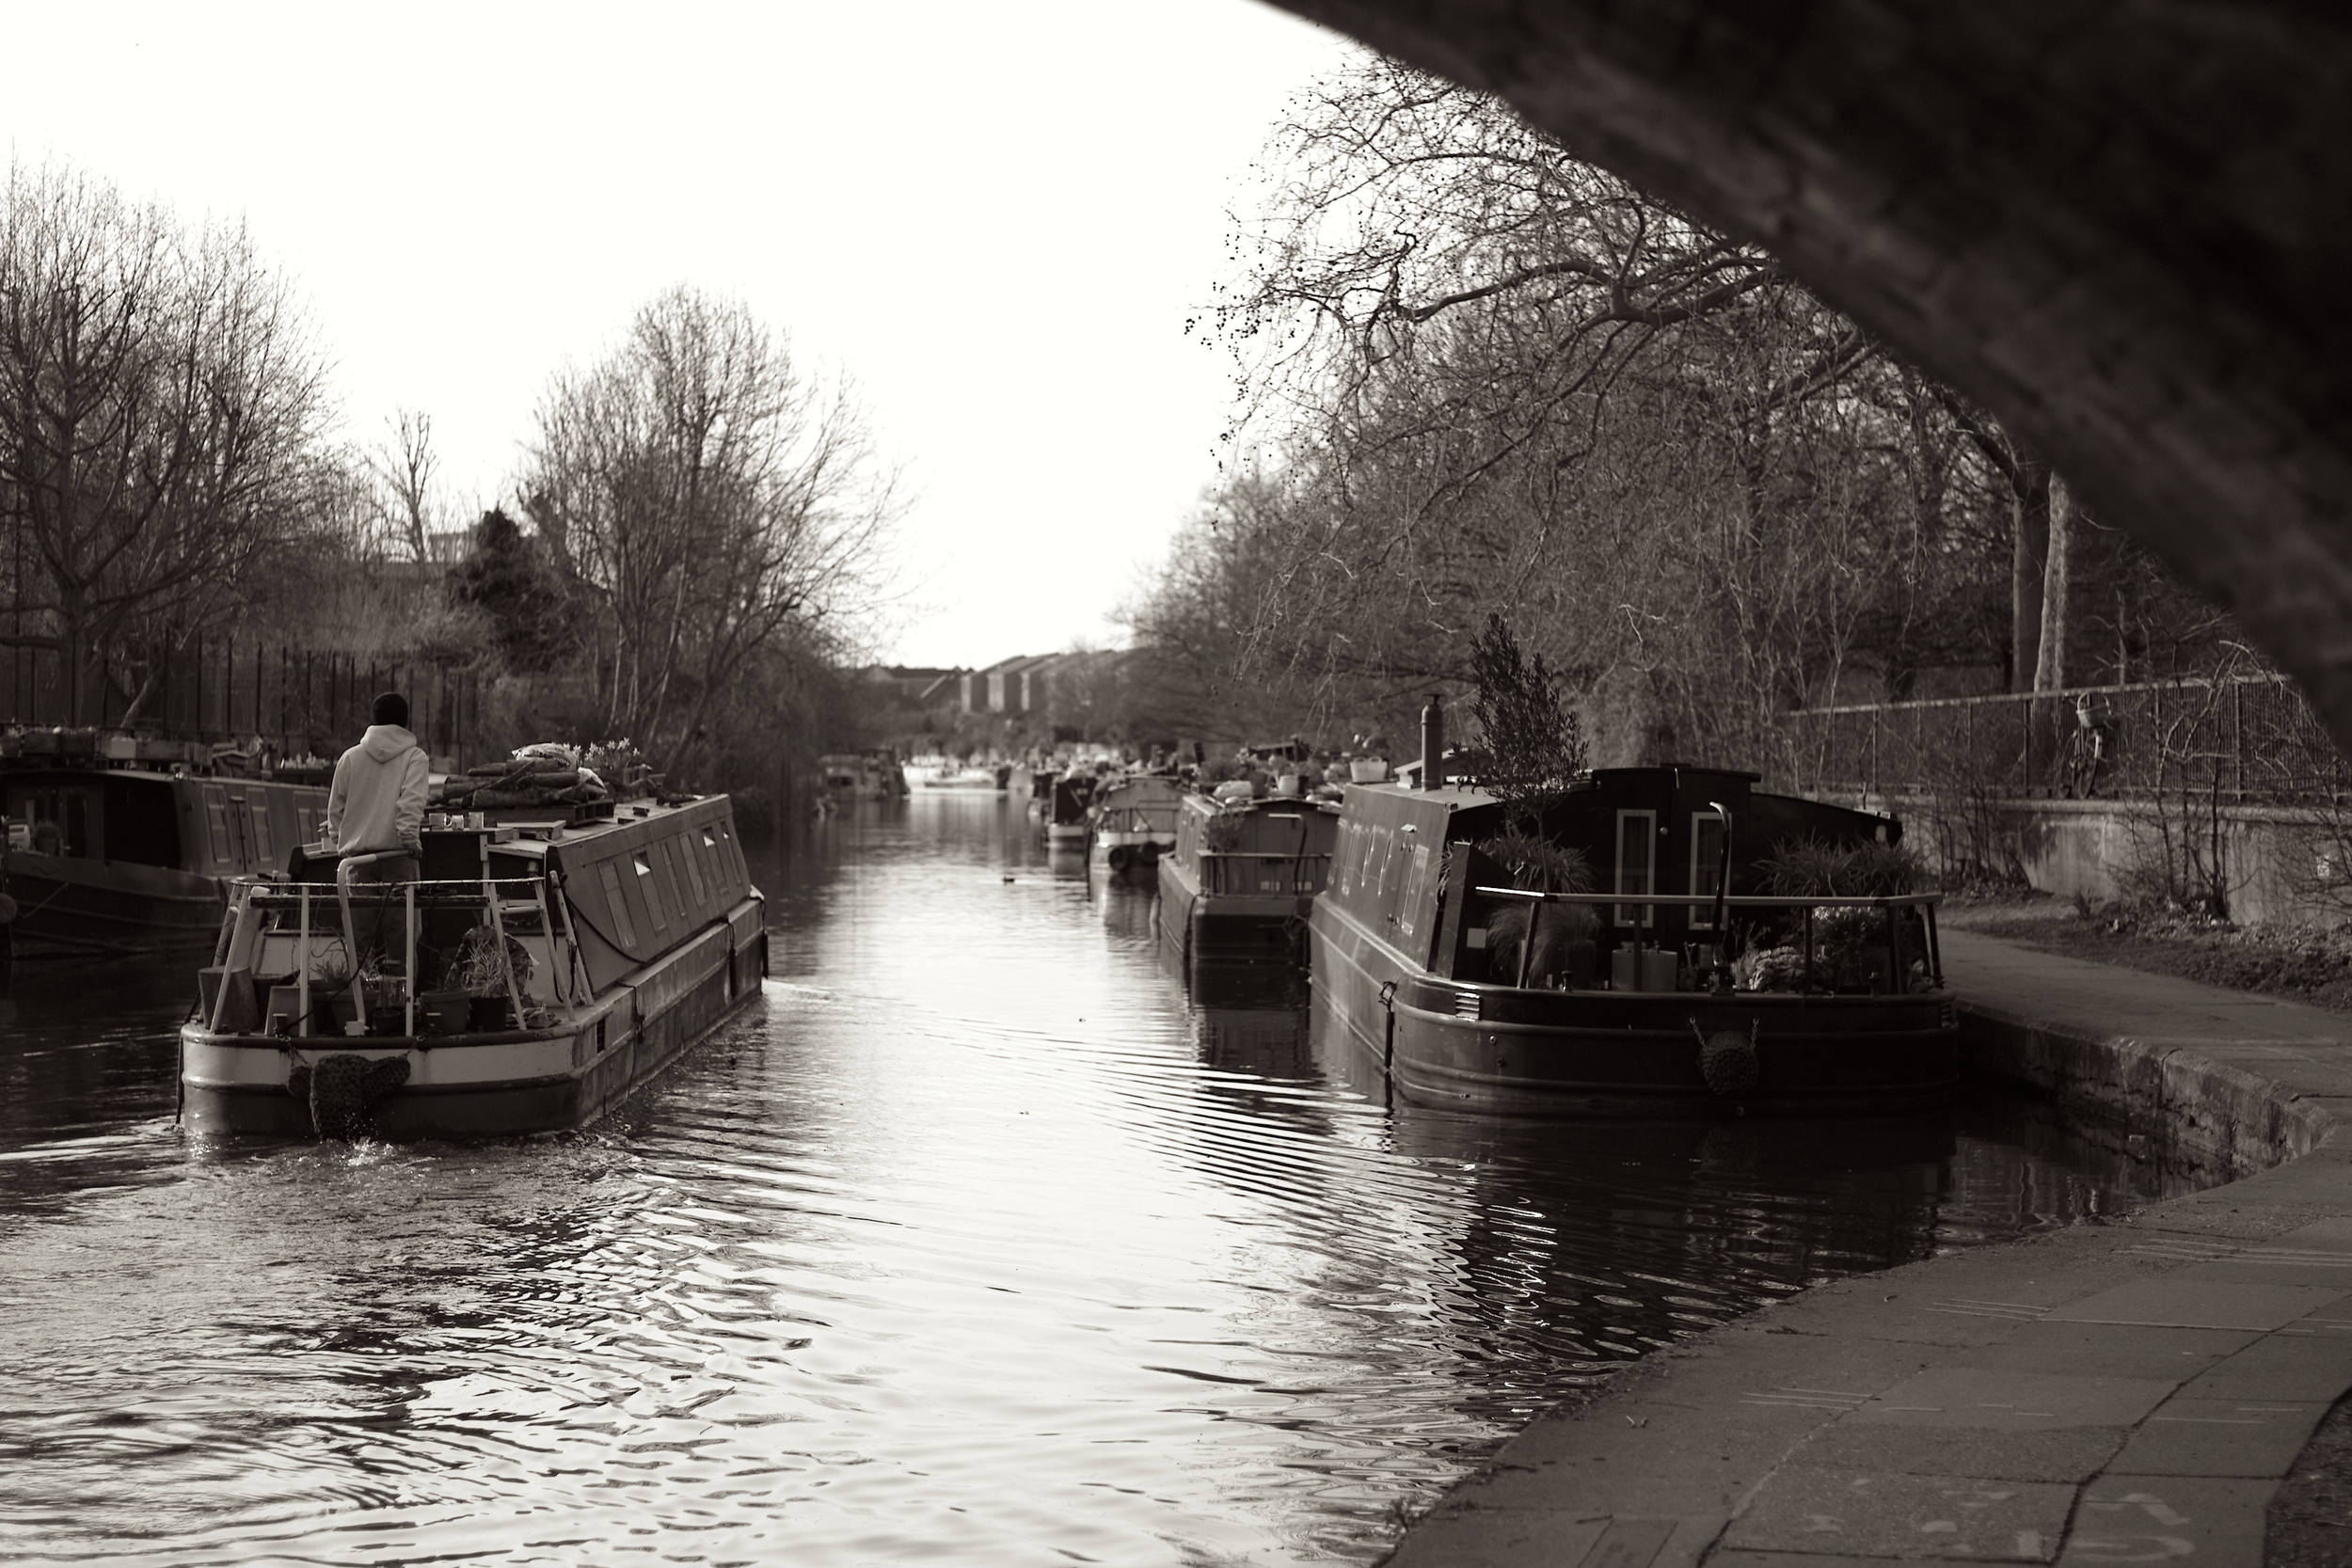 Regents Canal by Casual Snob